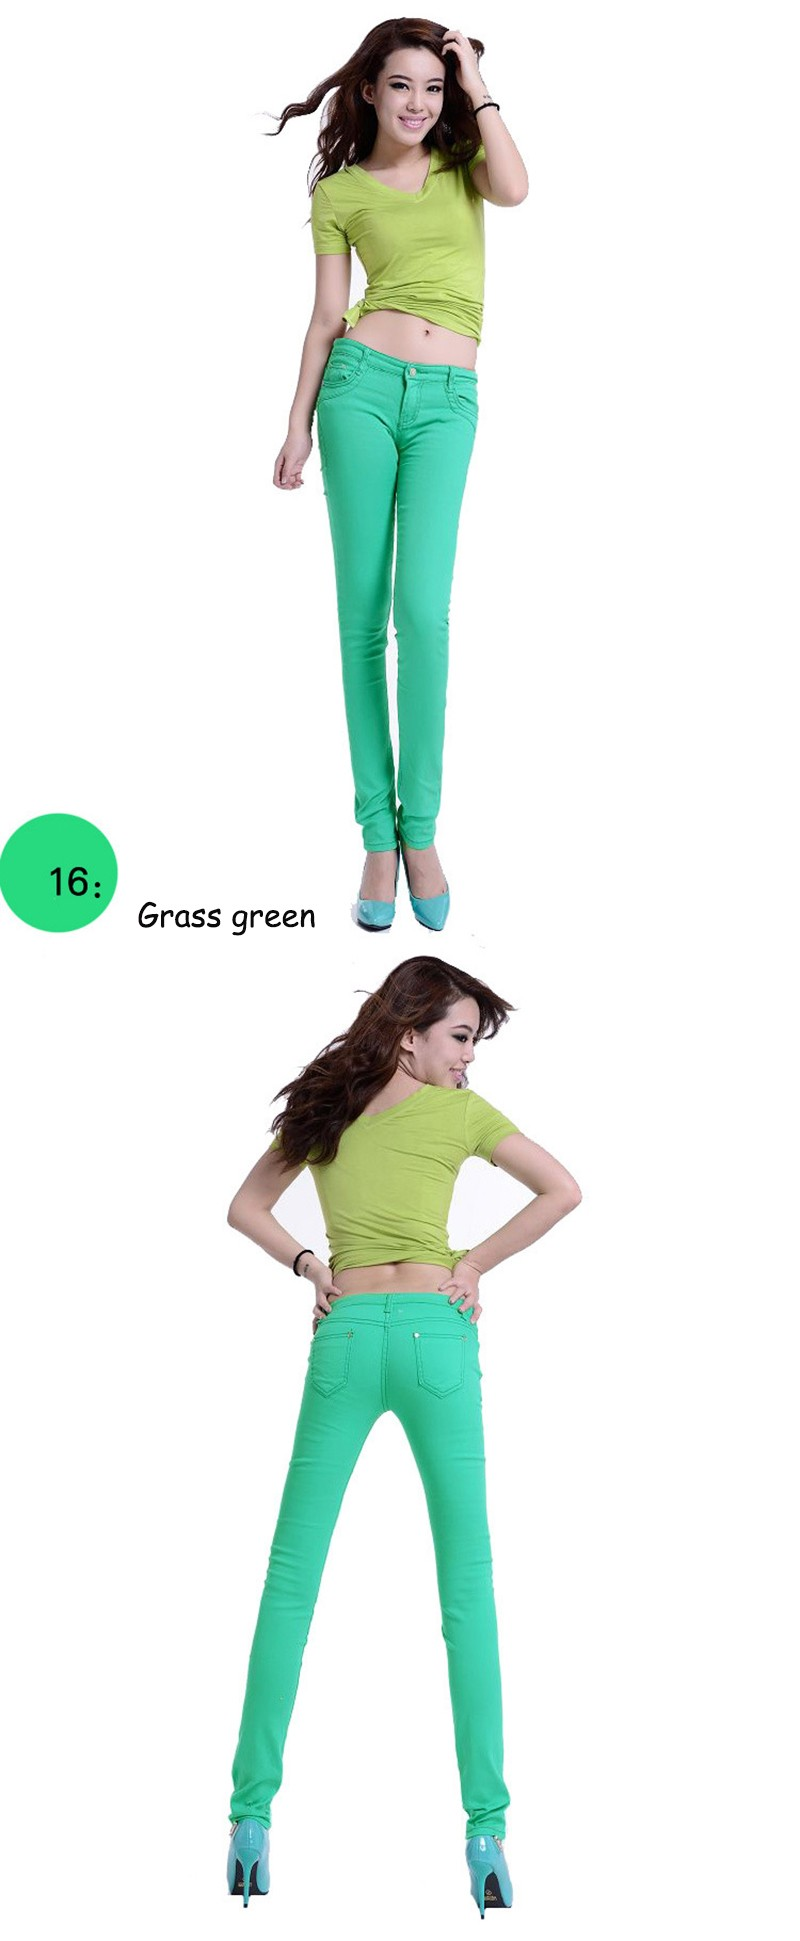 2016 Women Sexy Pencil Pants Spring Candy Color Casual Pants Skinny Pants Cotton Summer Trousers Hot Sale